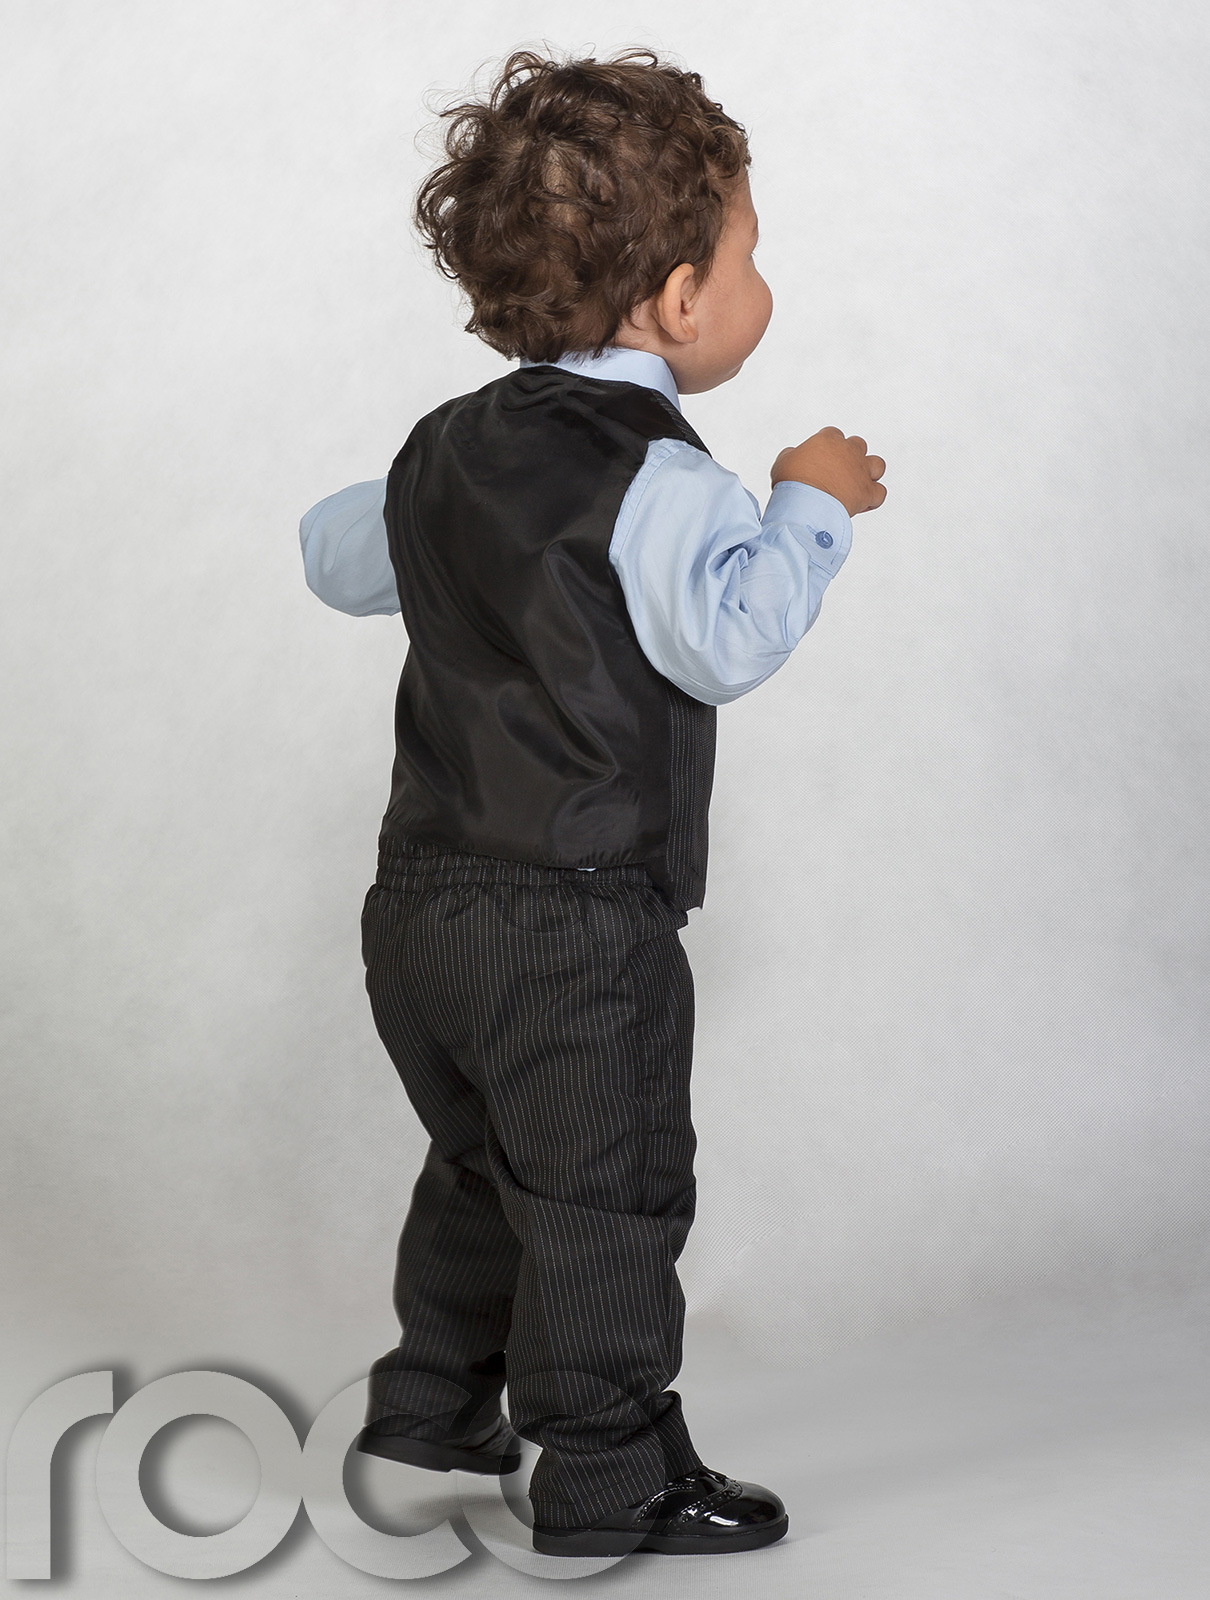 Angel Baby Boys Toddler Tuxedo Black Suit with Bow Tie Size Medium / M / Months. Sold by nikgold. $ Angel Size Medium Boys Toddler Tuxedo Black Suit with Tie Baby Size M / MONTHS. Sold by nikgold. $ Angel Boys Toddler Tuxedo Tail Suit with Tie BABY Size / 2T - 3T - .